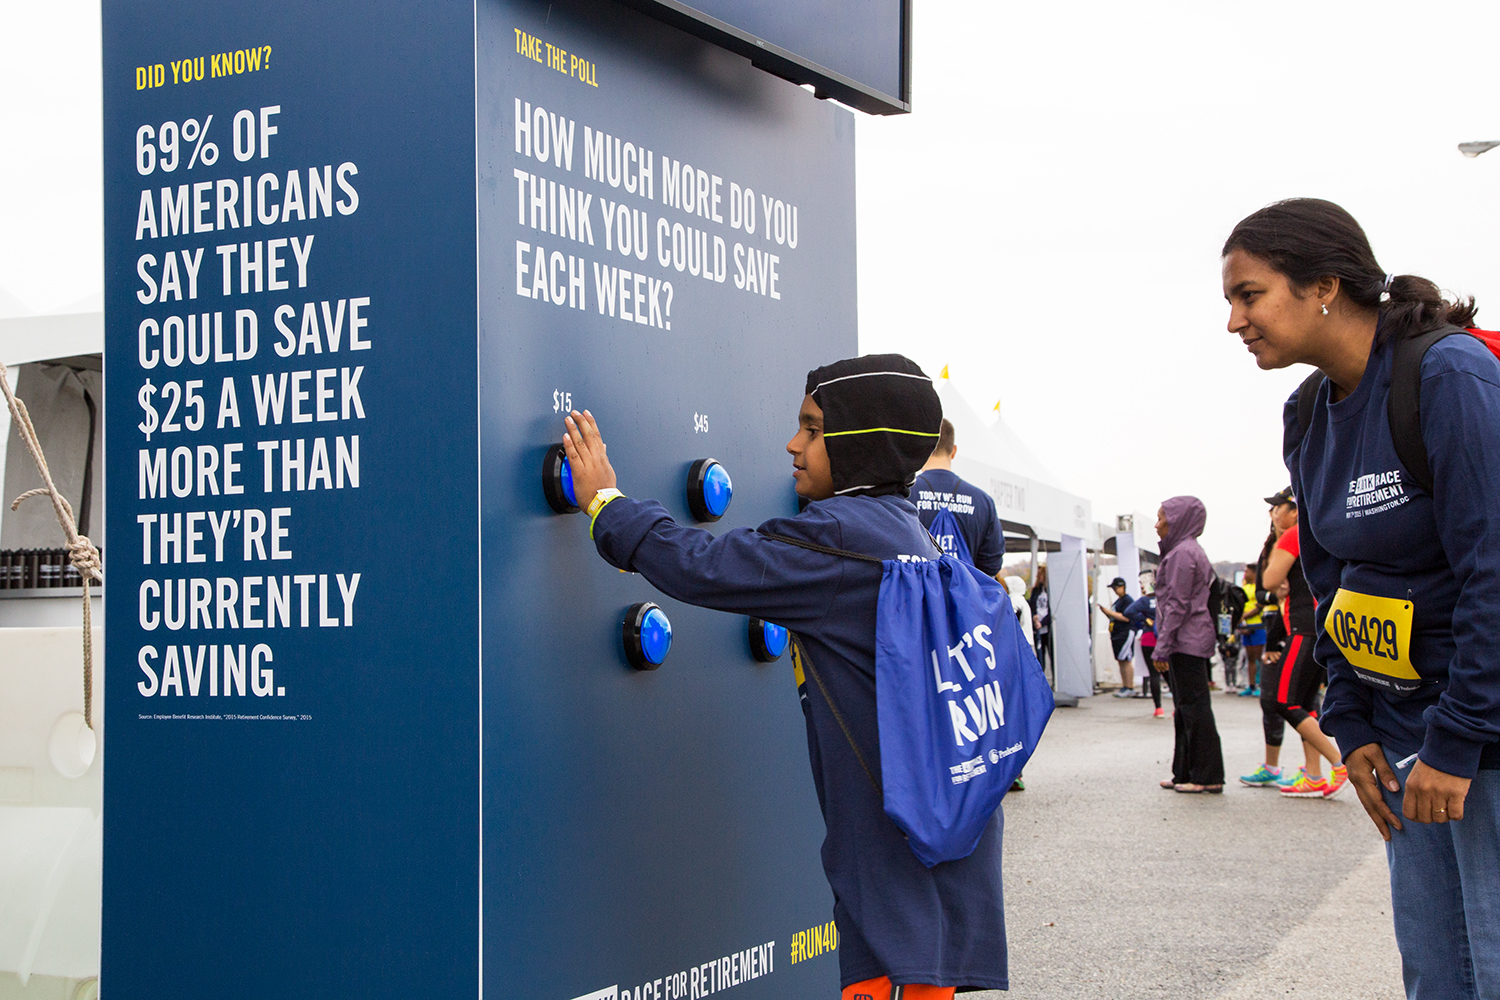 In addition to the race, the event featured a series of interactive experiences designed to help people rethink their perspective on saving for retirement.